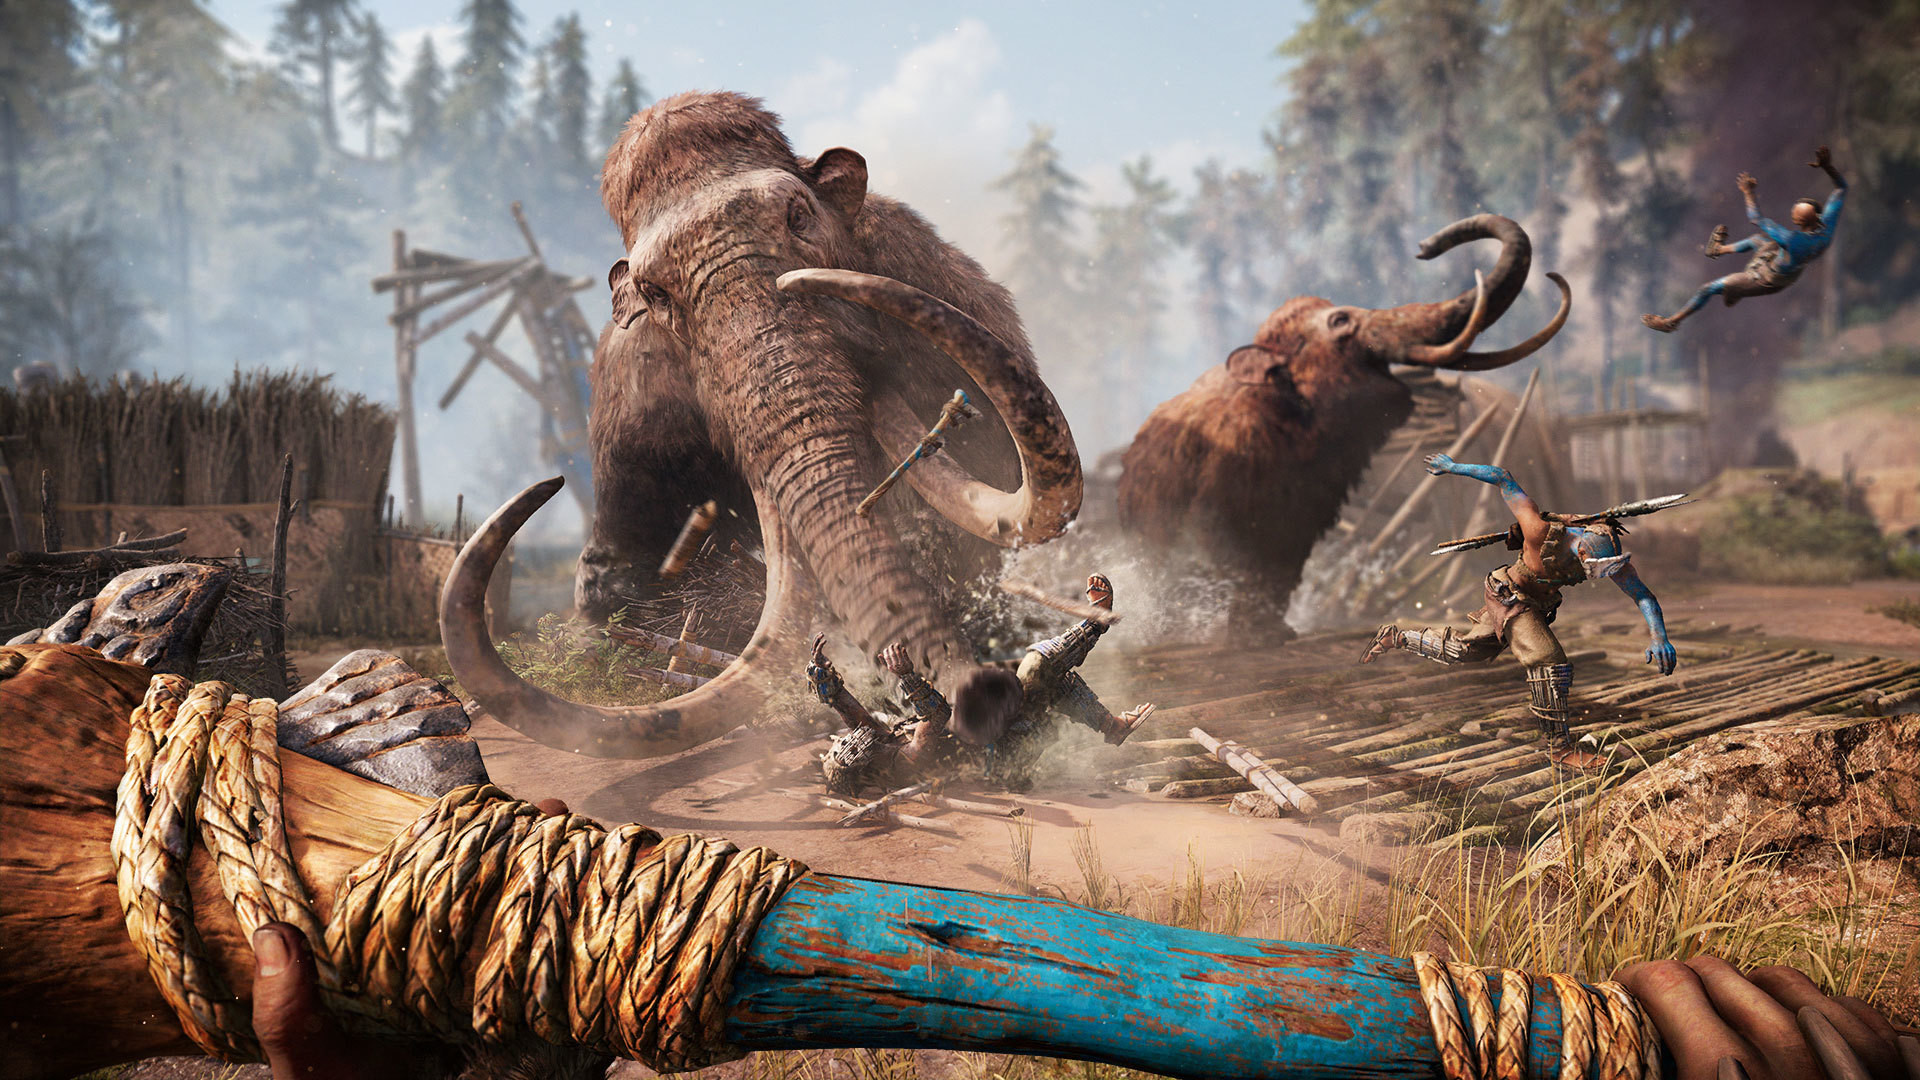 1920x1080 Far Cry Primal - HD Wallpaper Pack